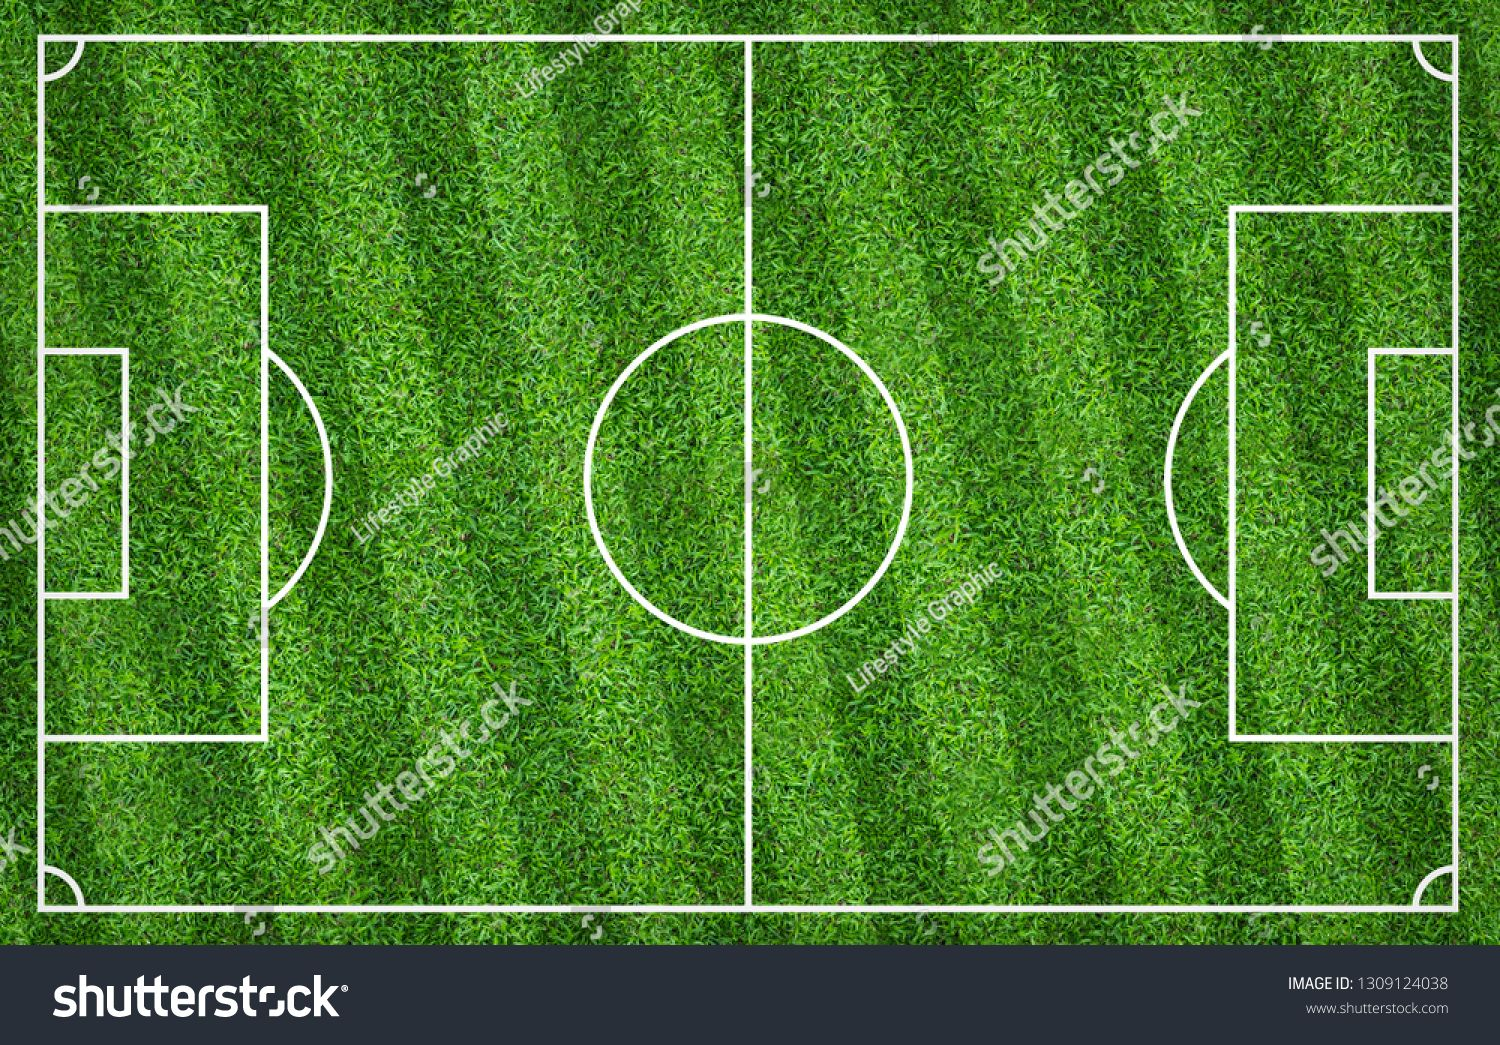 Football Field Or Soccer Field For Background Green Lawn Court For Create Sport Game Ad Ad Background Gr Soccer Backgrounds Football Field Soccer Field